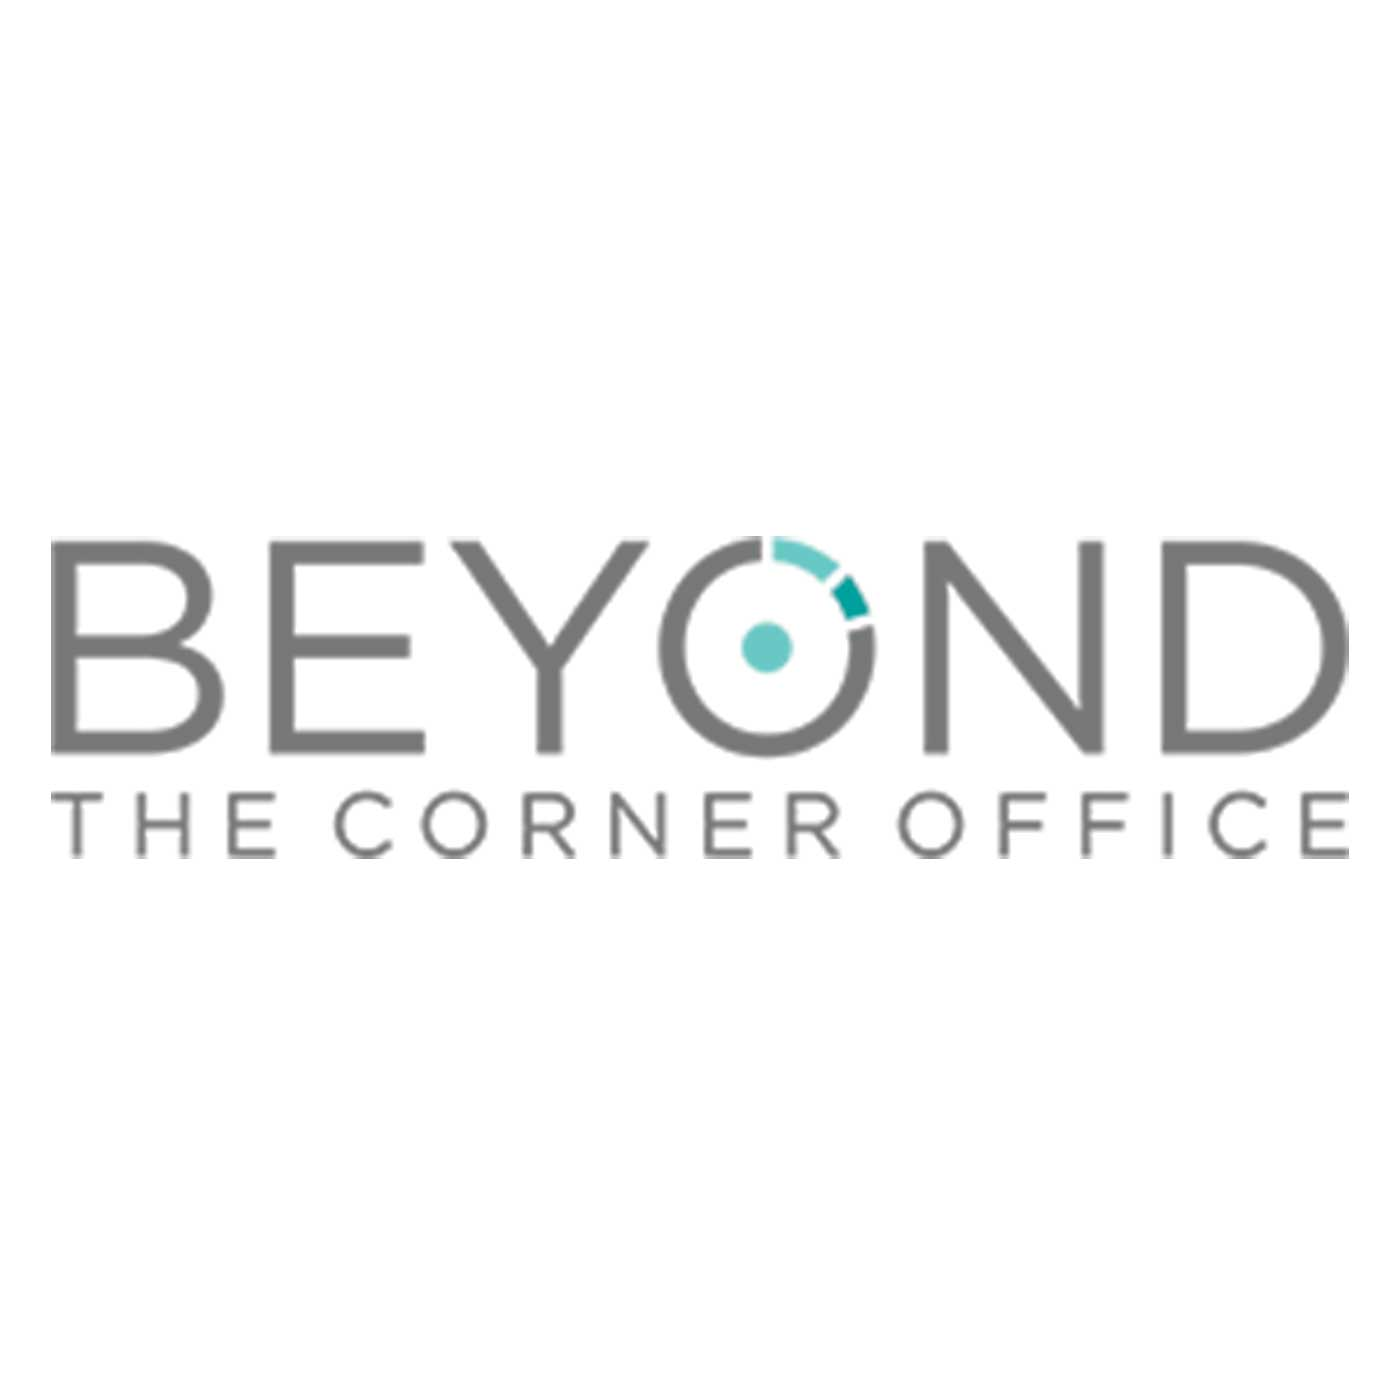 The Podcast from Beyond The Corner Office